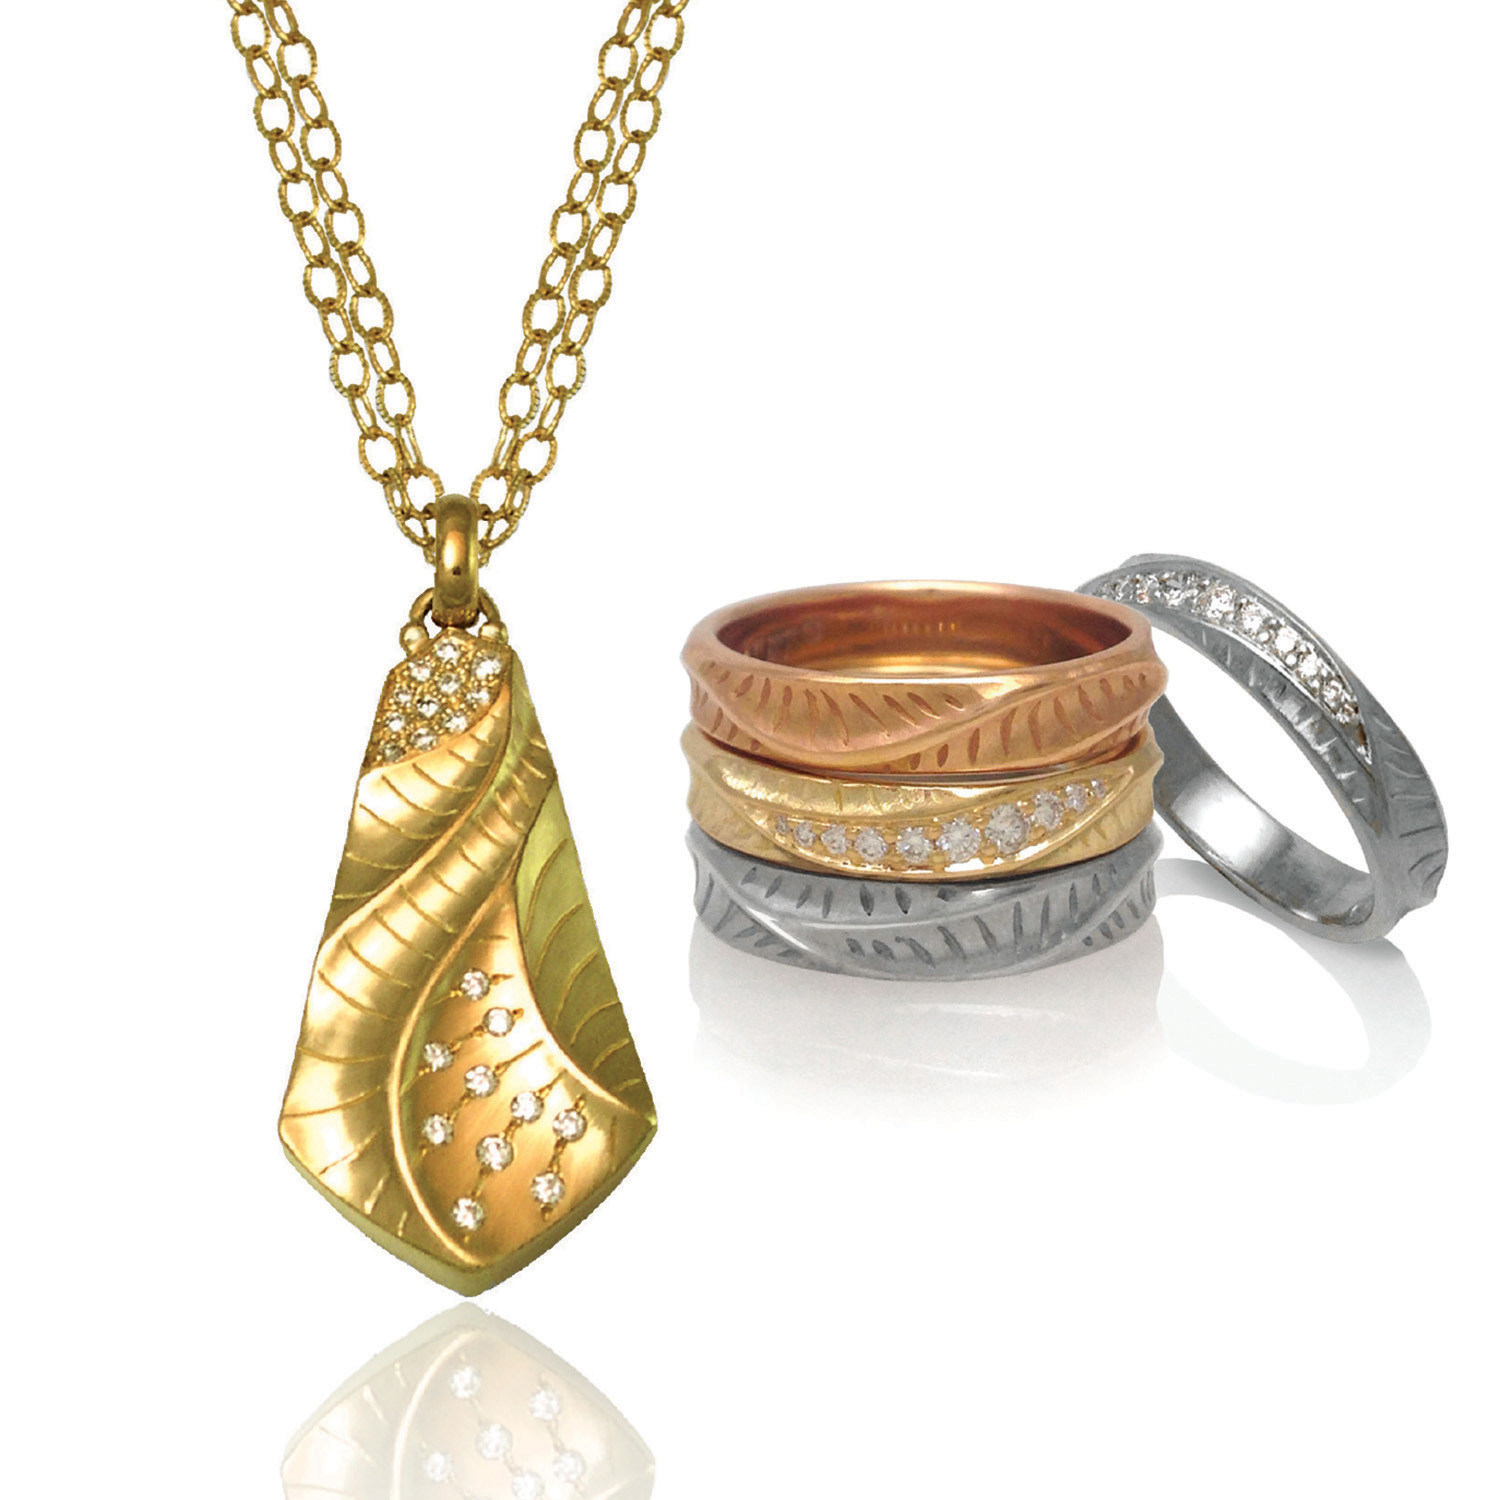 Kite Pendant and Stackable Rings from K.Mita's Sand Dune Collection